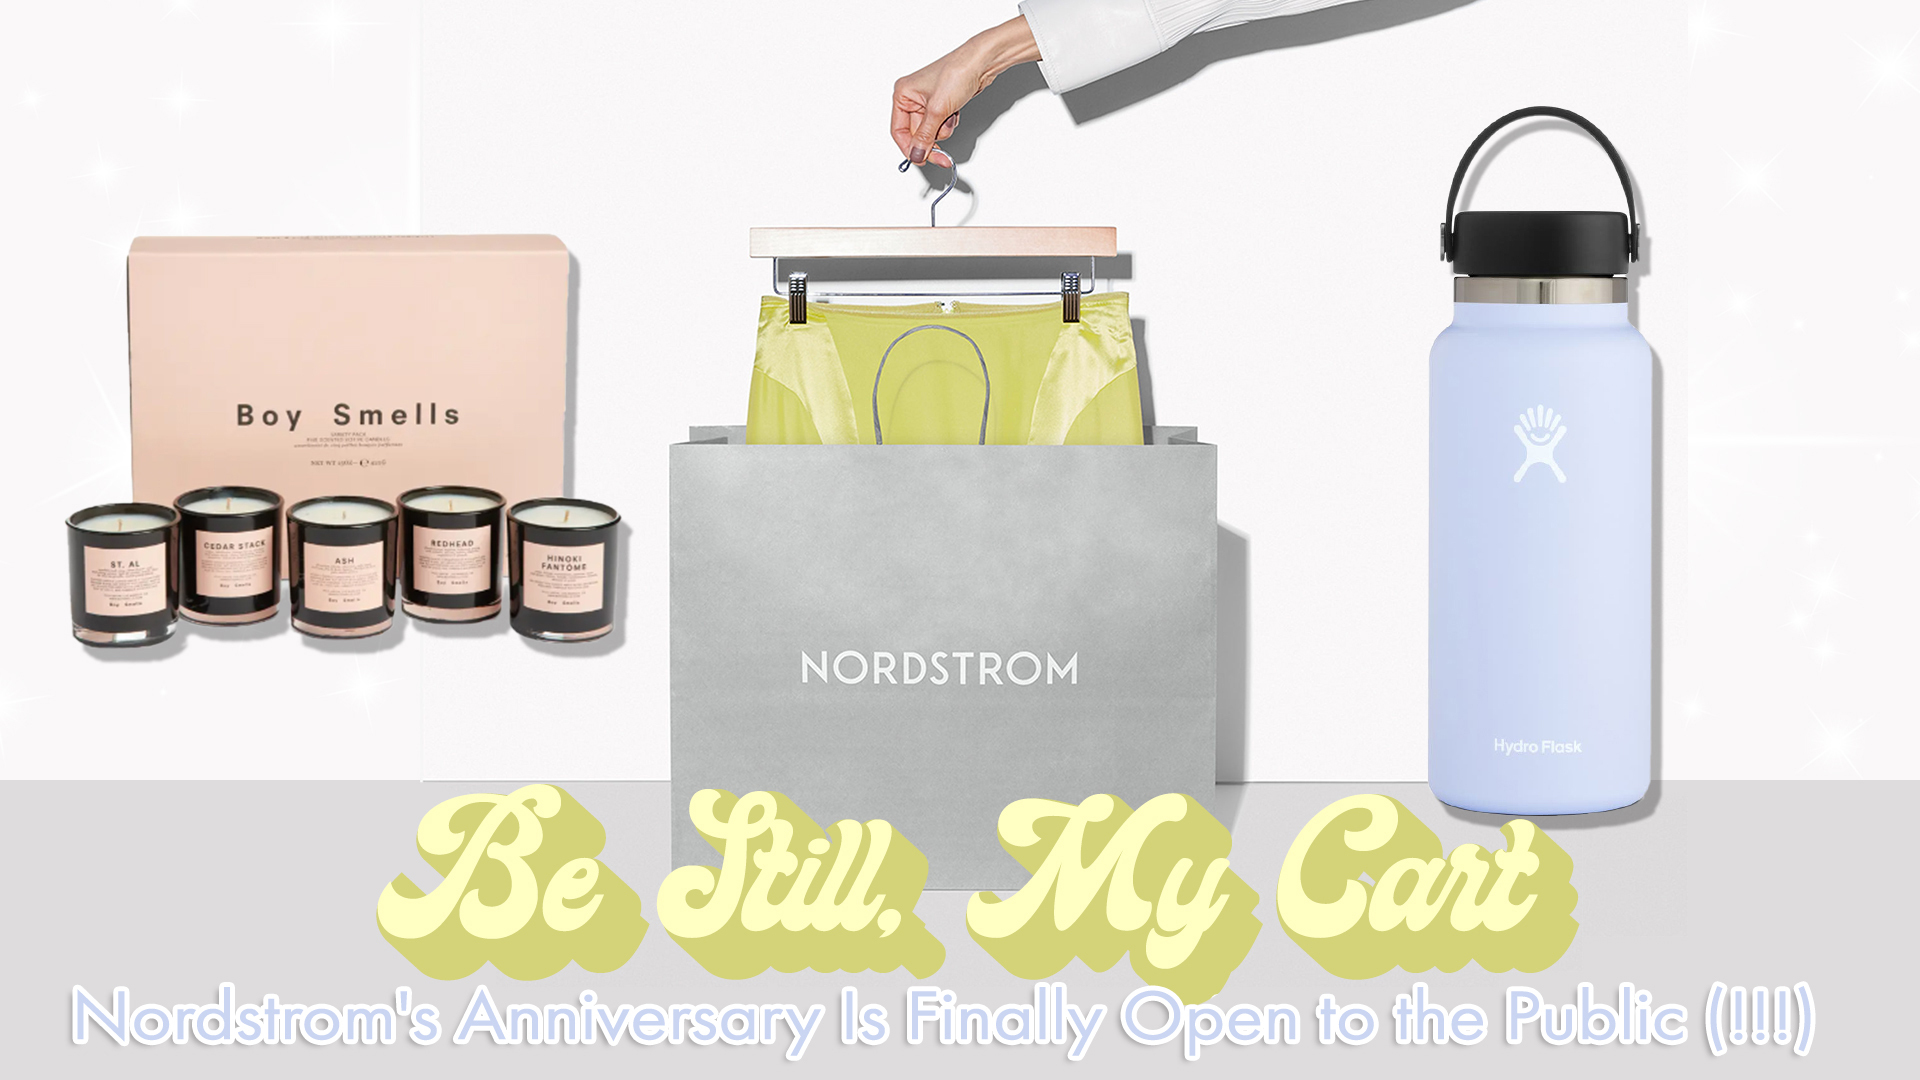 Be Still, My Cart — Nordstrom's Anniversary Sale *Finally* Open to the Public